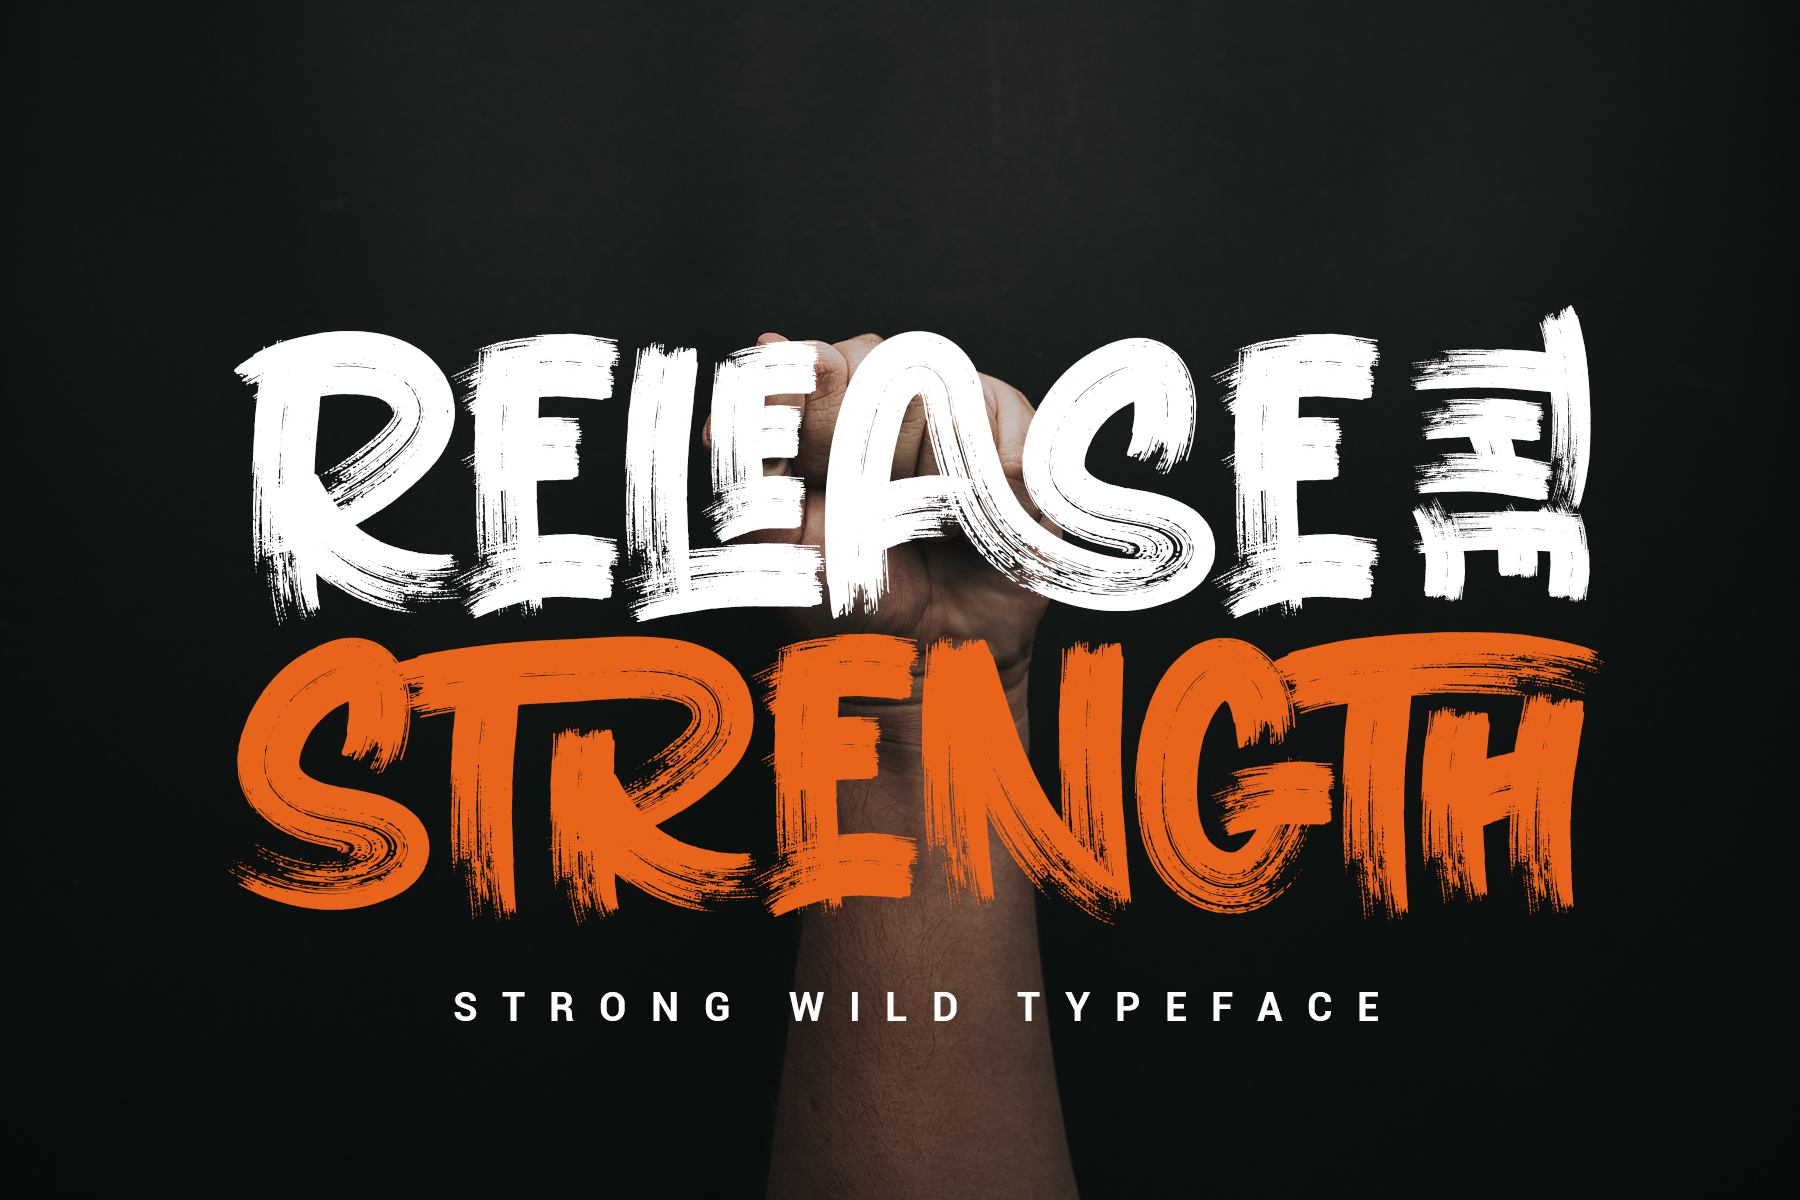 RELEASE THE STRENGTH